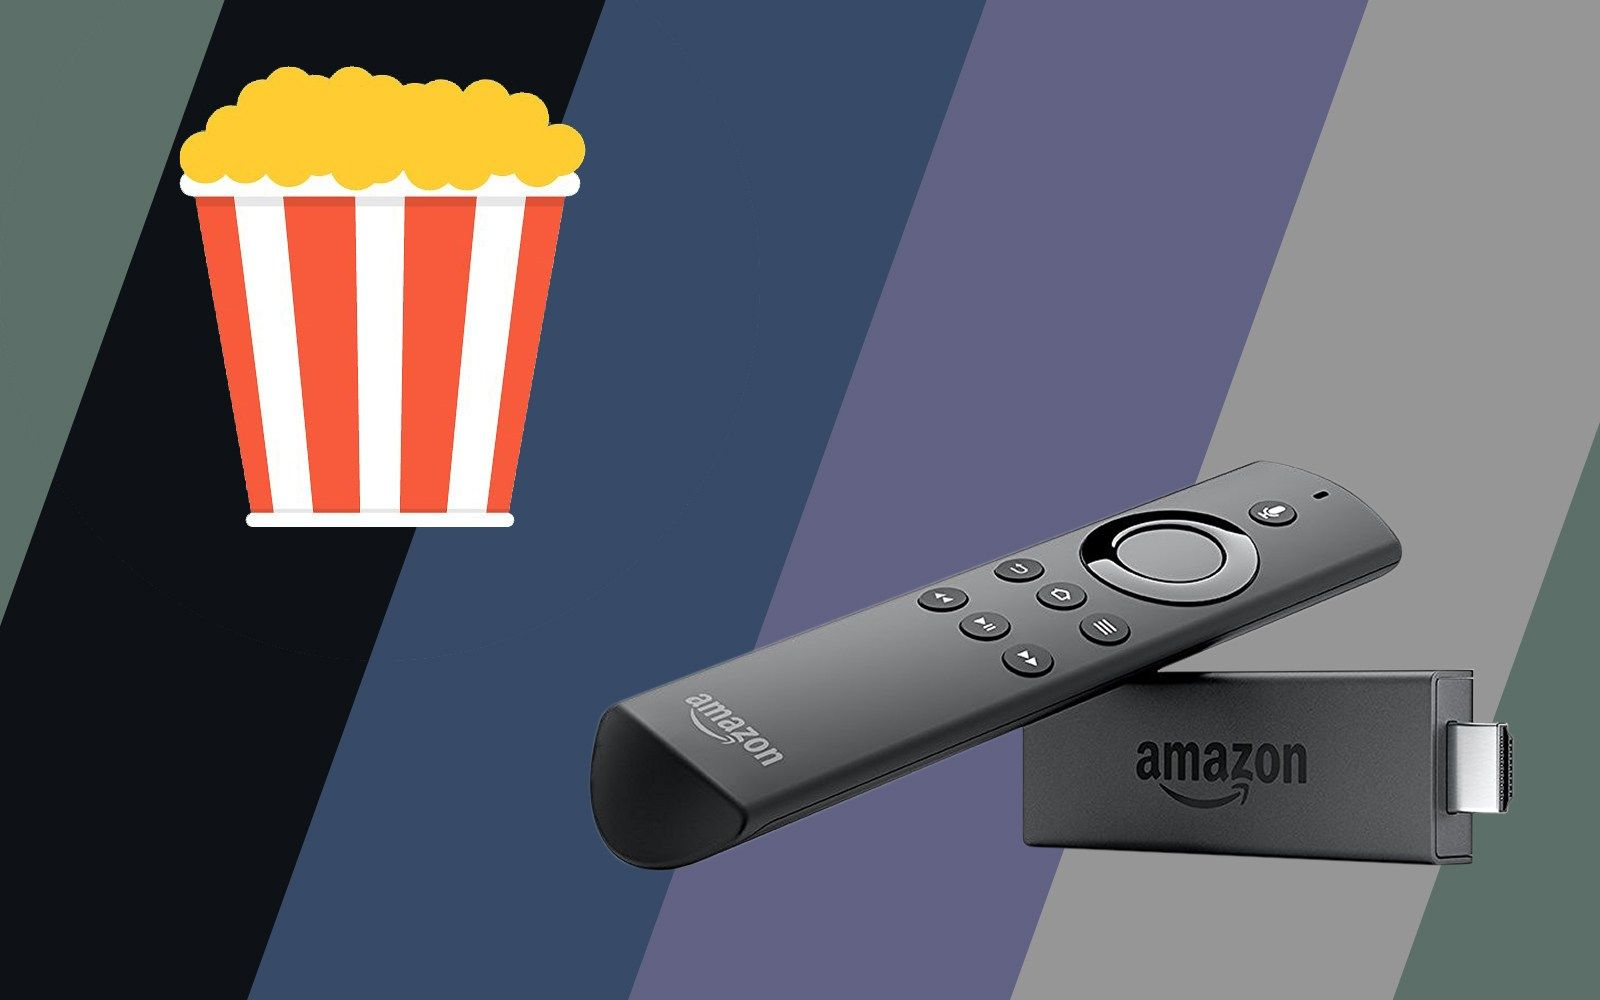 The Best Apps to Watch Movies on Your Amazon Fire Stick